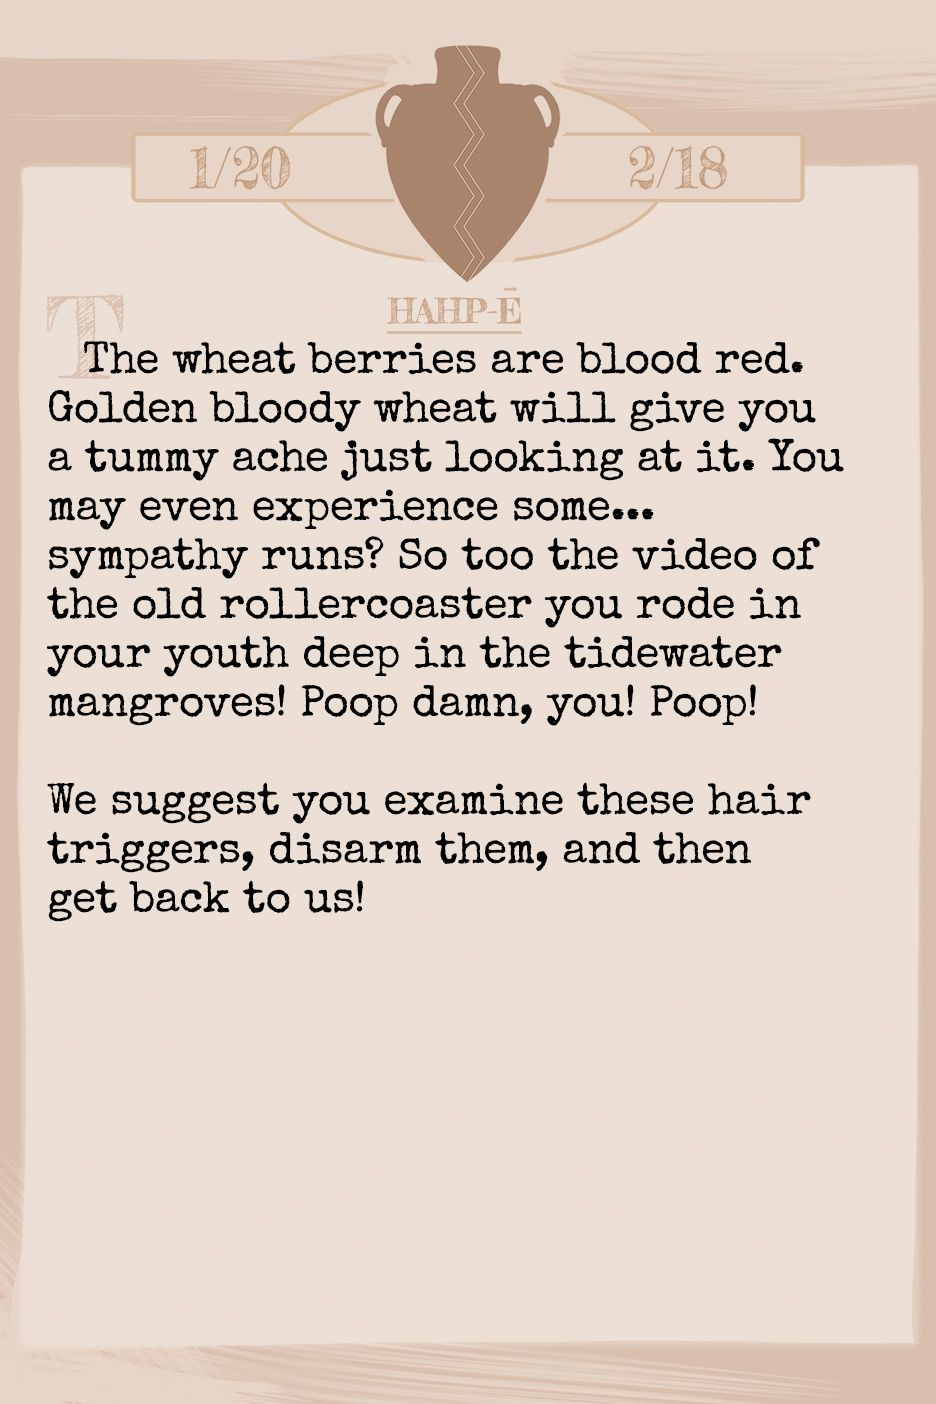 September 2019 Horoscope (Old sign: Aquarius) The wheat berries are blood red. Golden bloody wheat will give you a tummy ache just looking at it. You may even experience some...sympathy runs? So too the video of the old rollercoaster you rode in your youth deep in the tidewater mangroves! Poop damn, you! Poop! We suggest you examine these hair triggers, disarm them, and then get back to us!